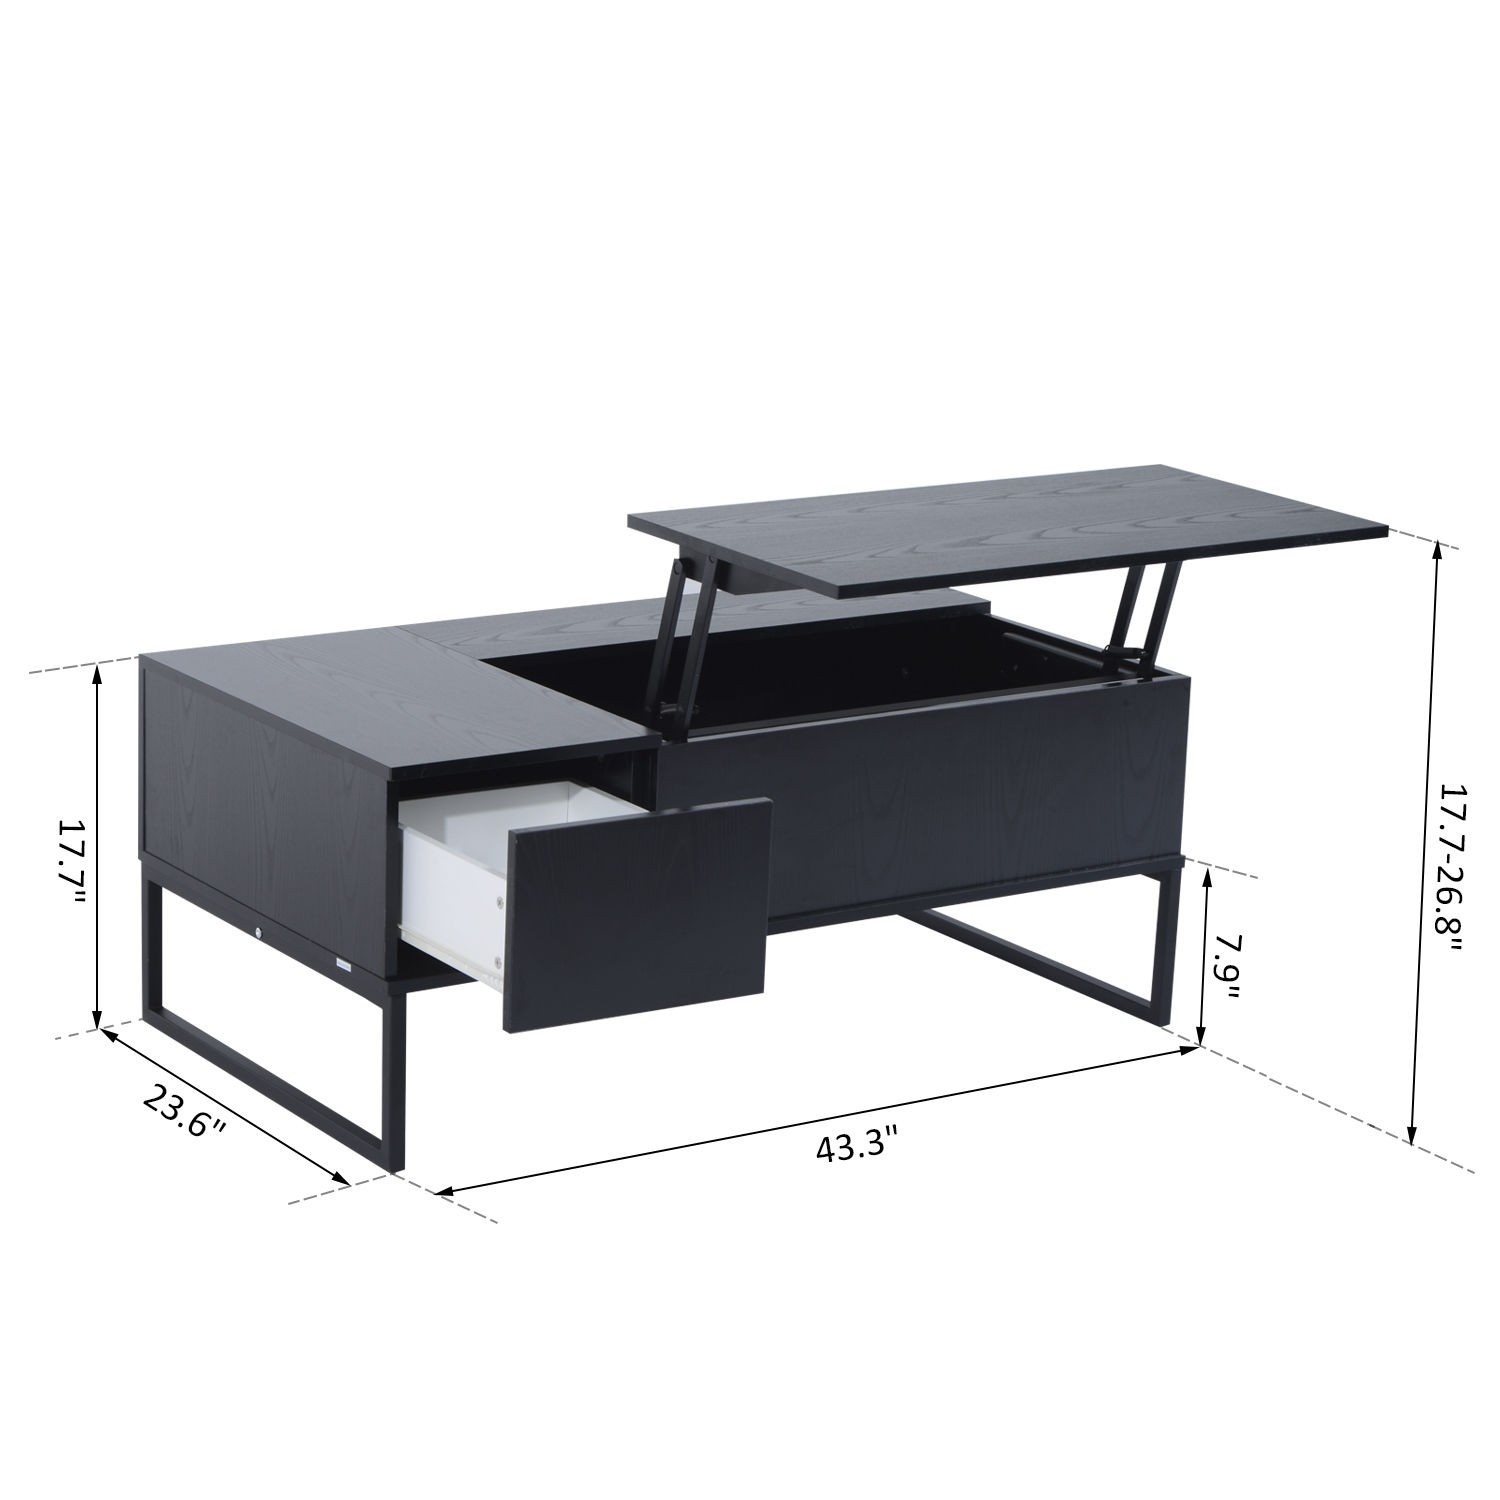 homcom lift top coffee table convertible tea desk furniture wood  - homcom lift top coffee table convertible tea desk furniture wood storagefoldable with tray black  coffee tables  best buy canada